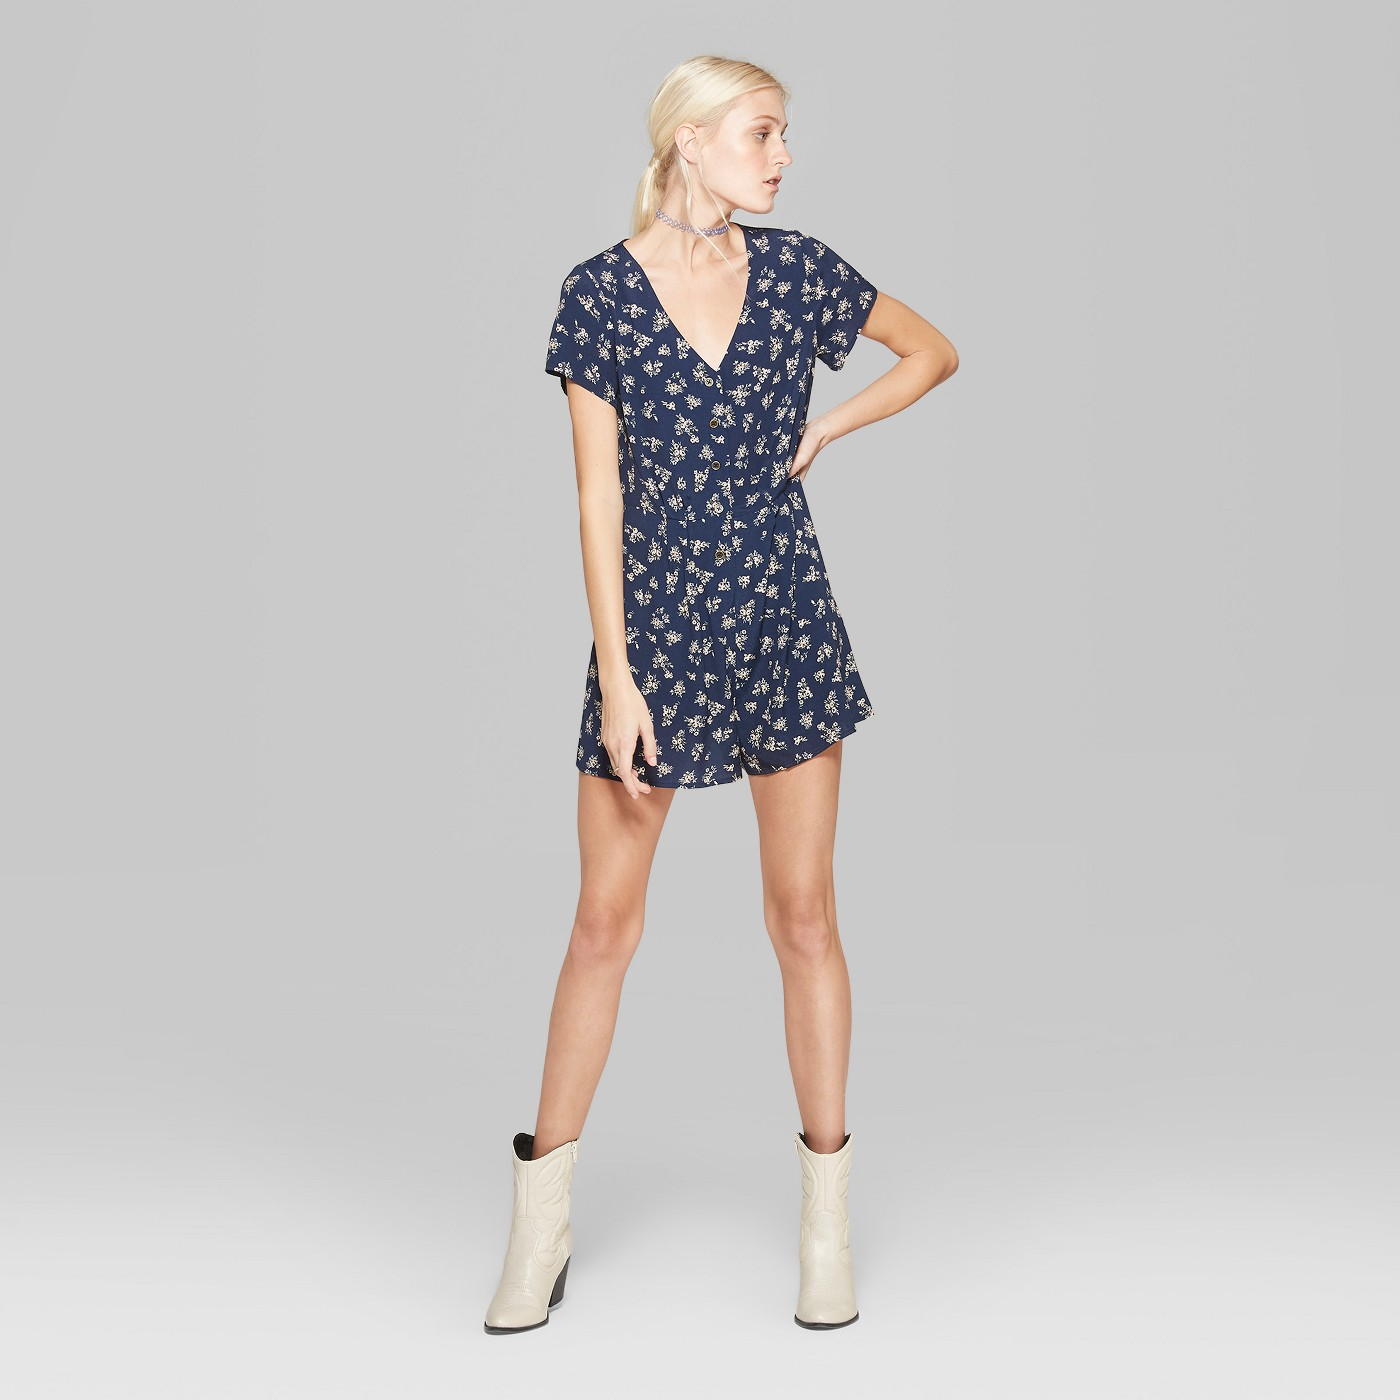 Gorgeous Finds at Target  - Wild Fable Women's Floral Print Short Sleeve Button Front Romper in Navy